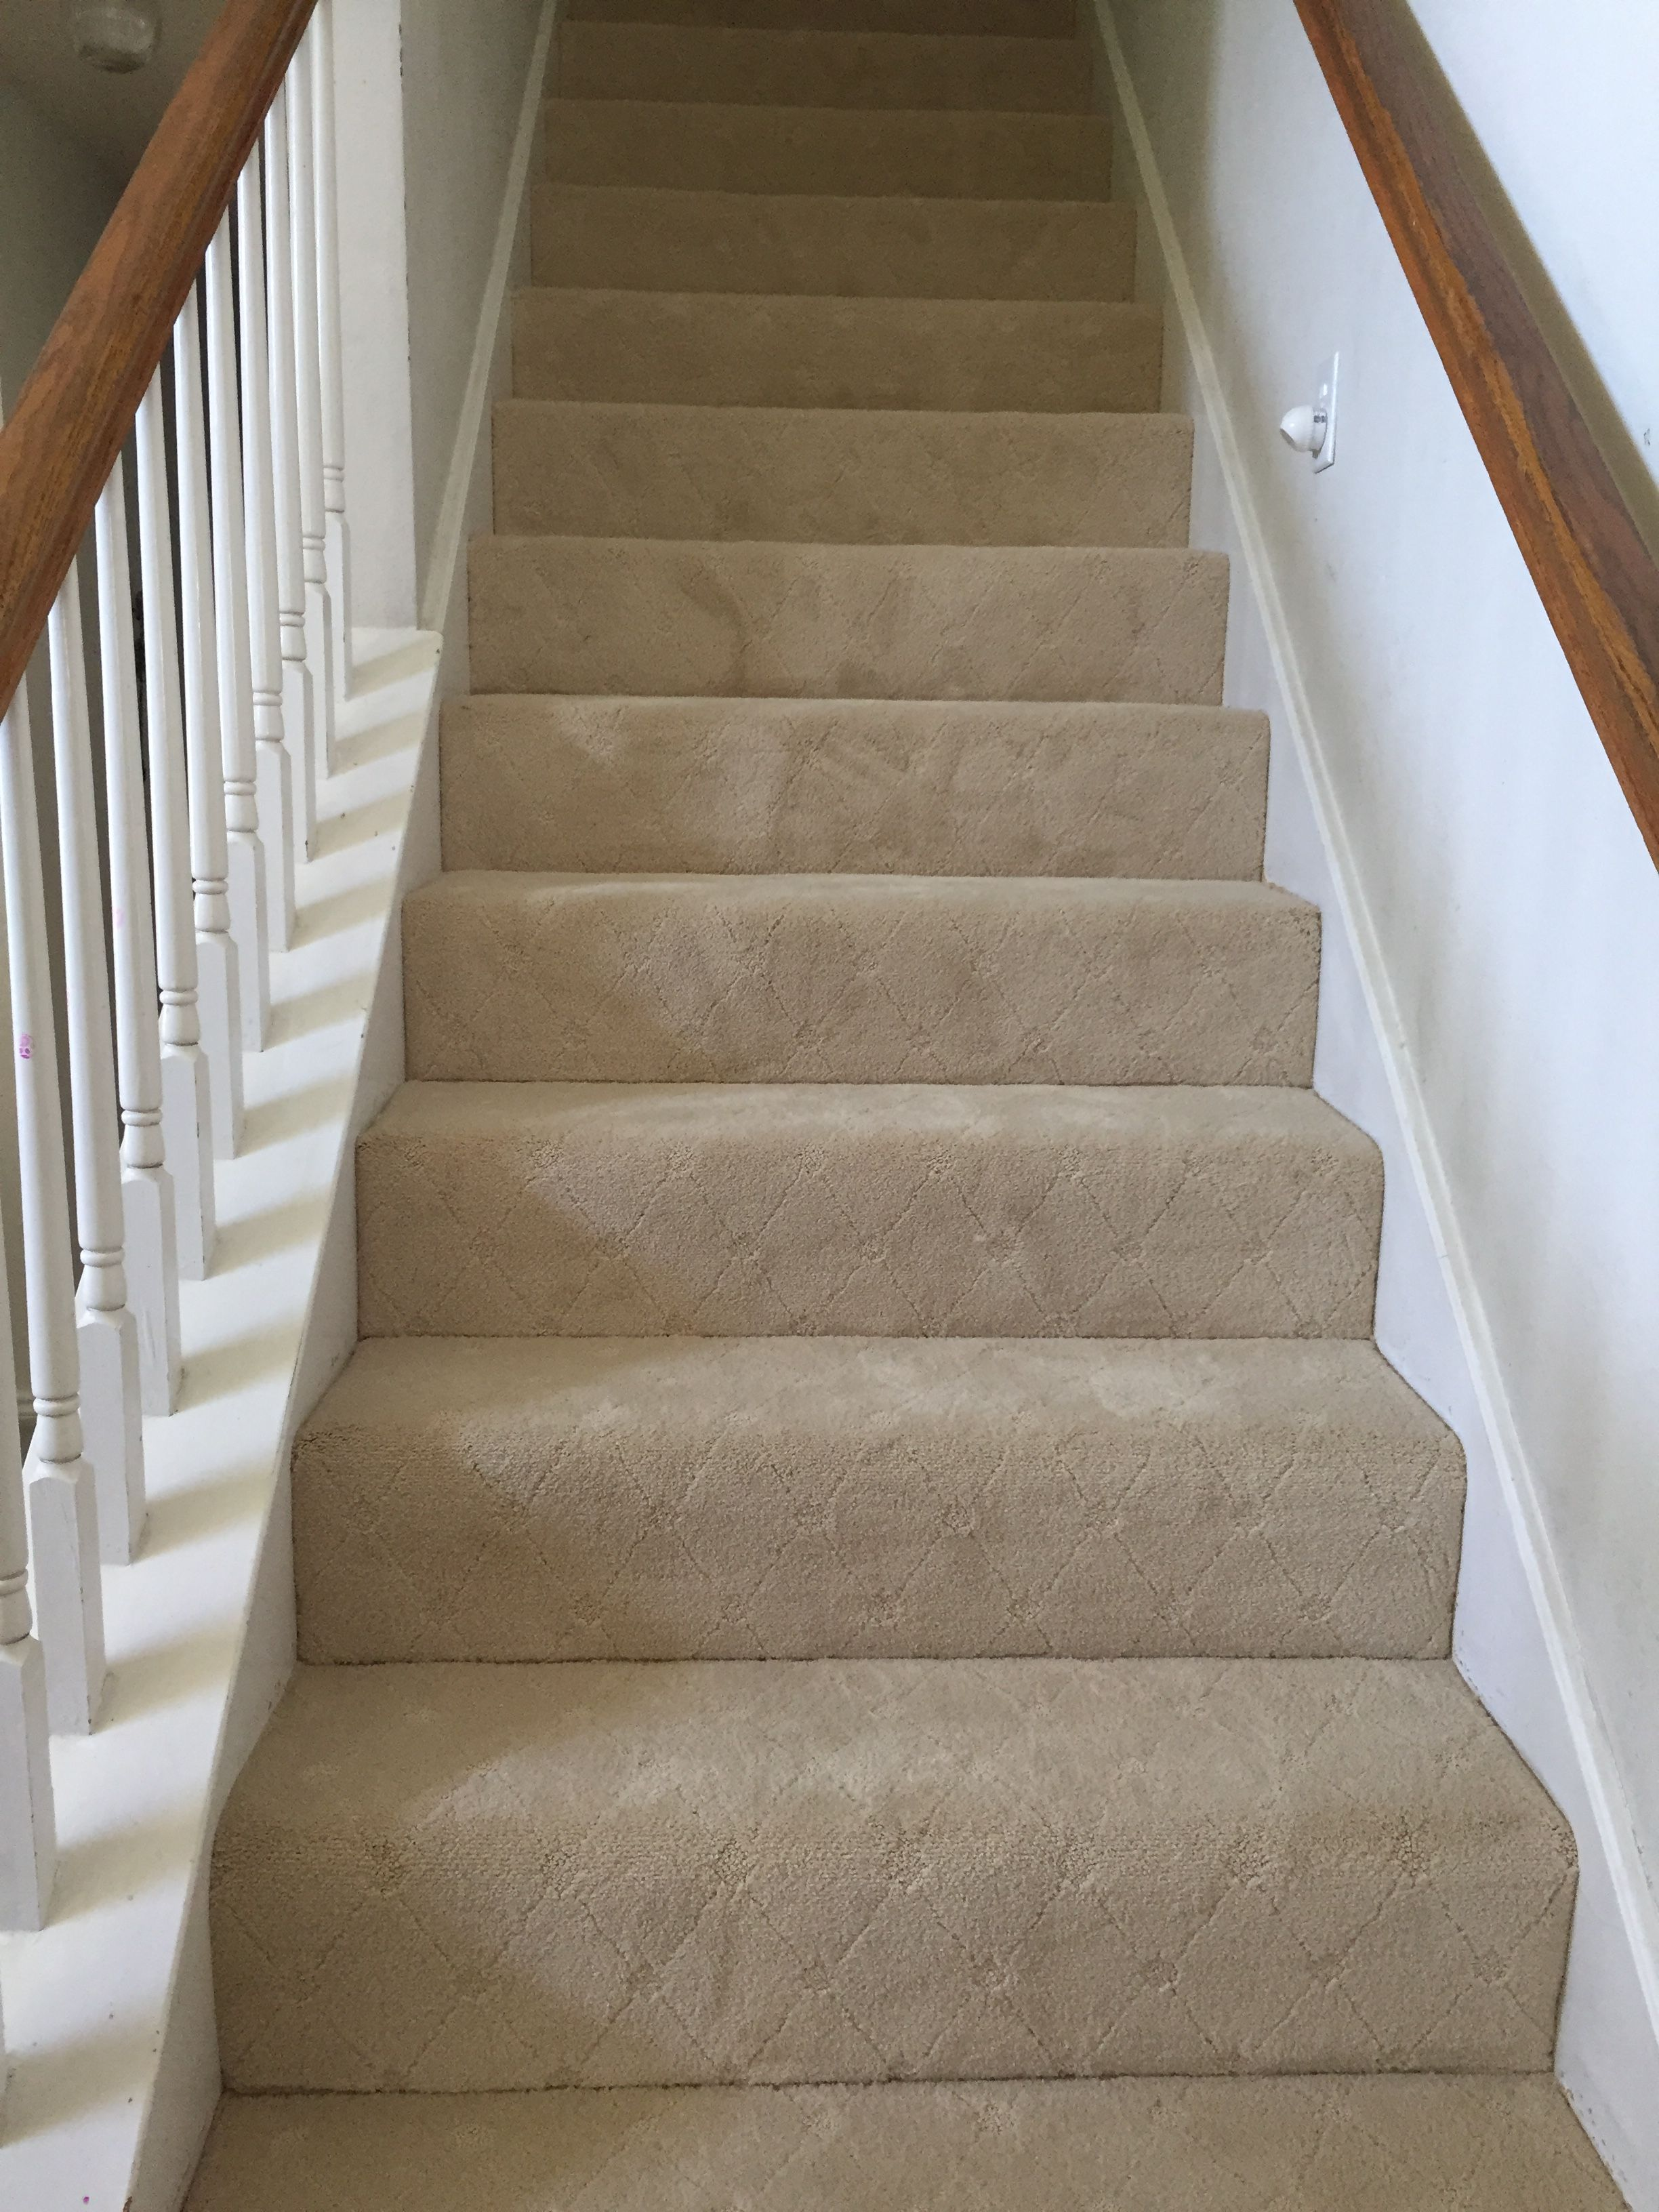 Best Diamond Pattern Carpet On Stair Case Patterned Carpet 400 x 300